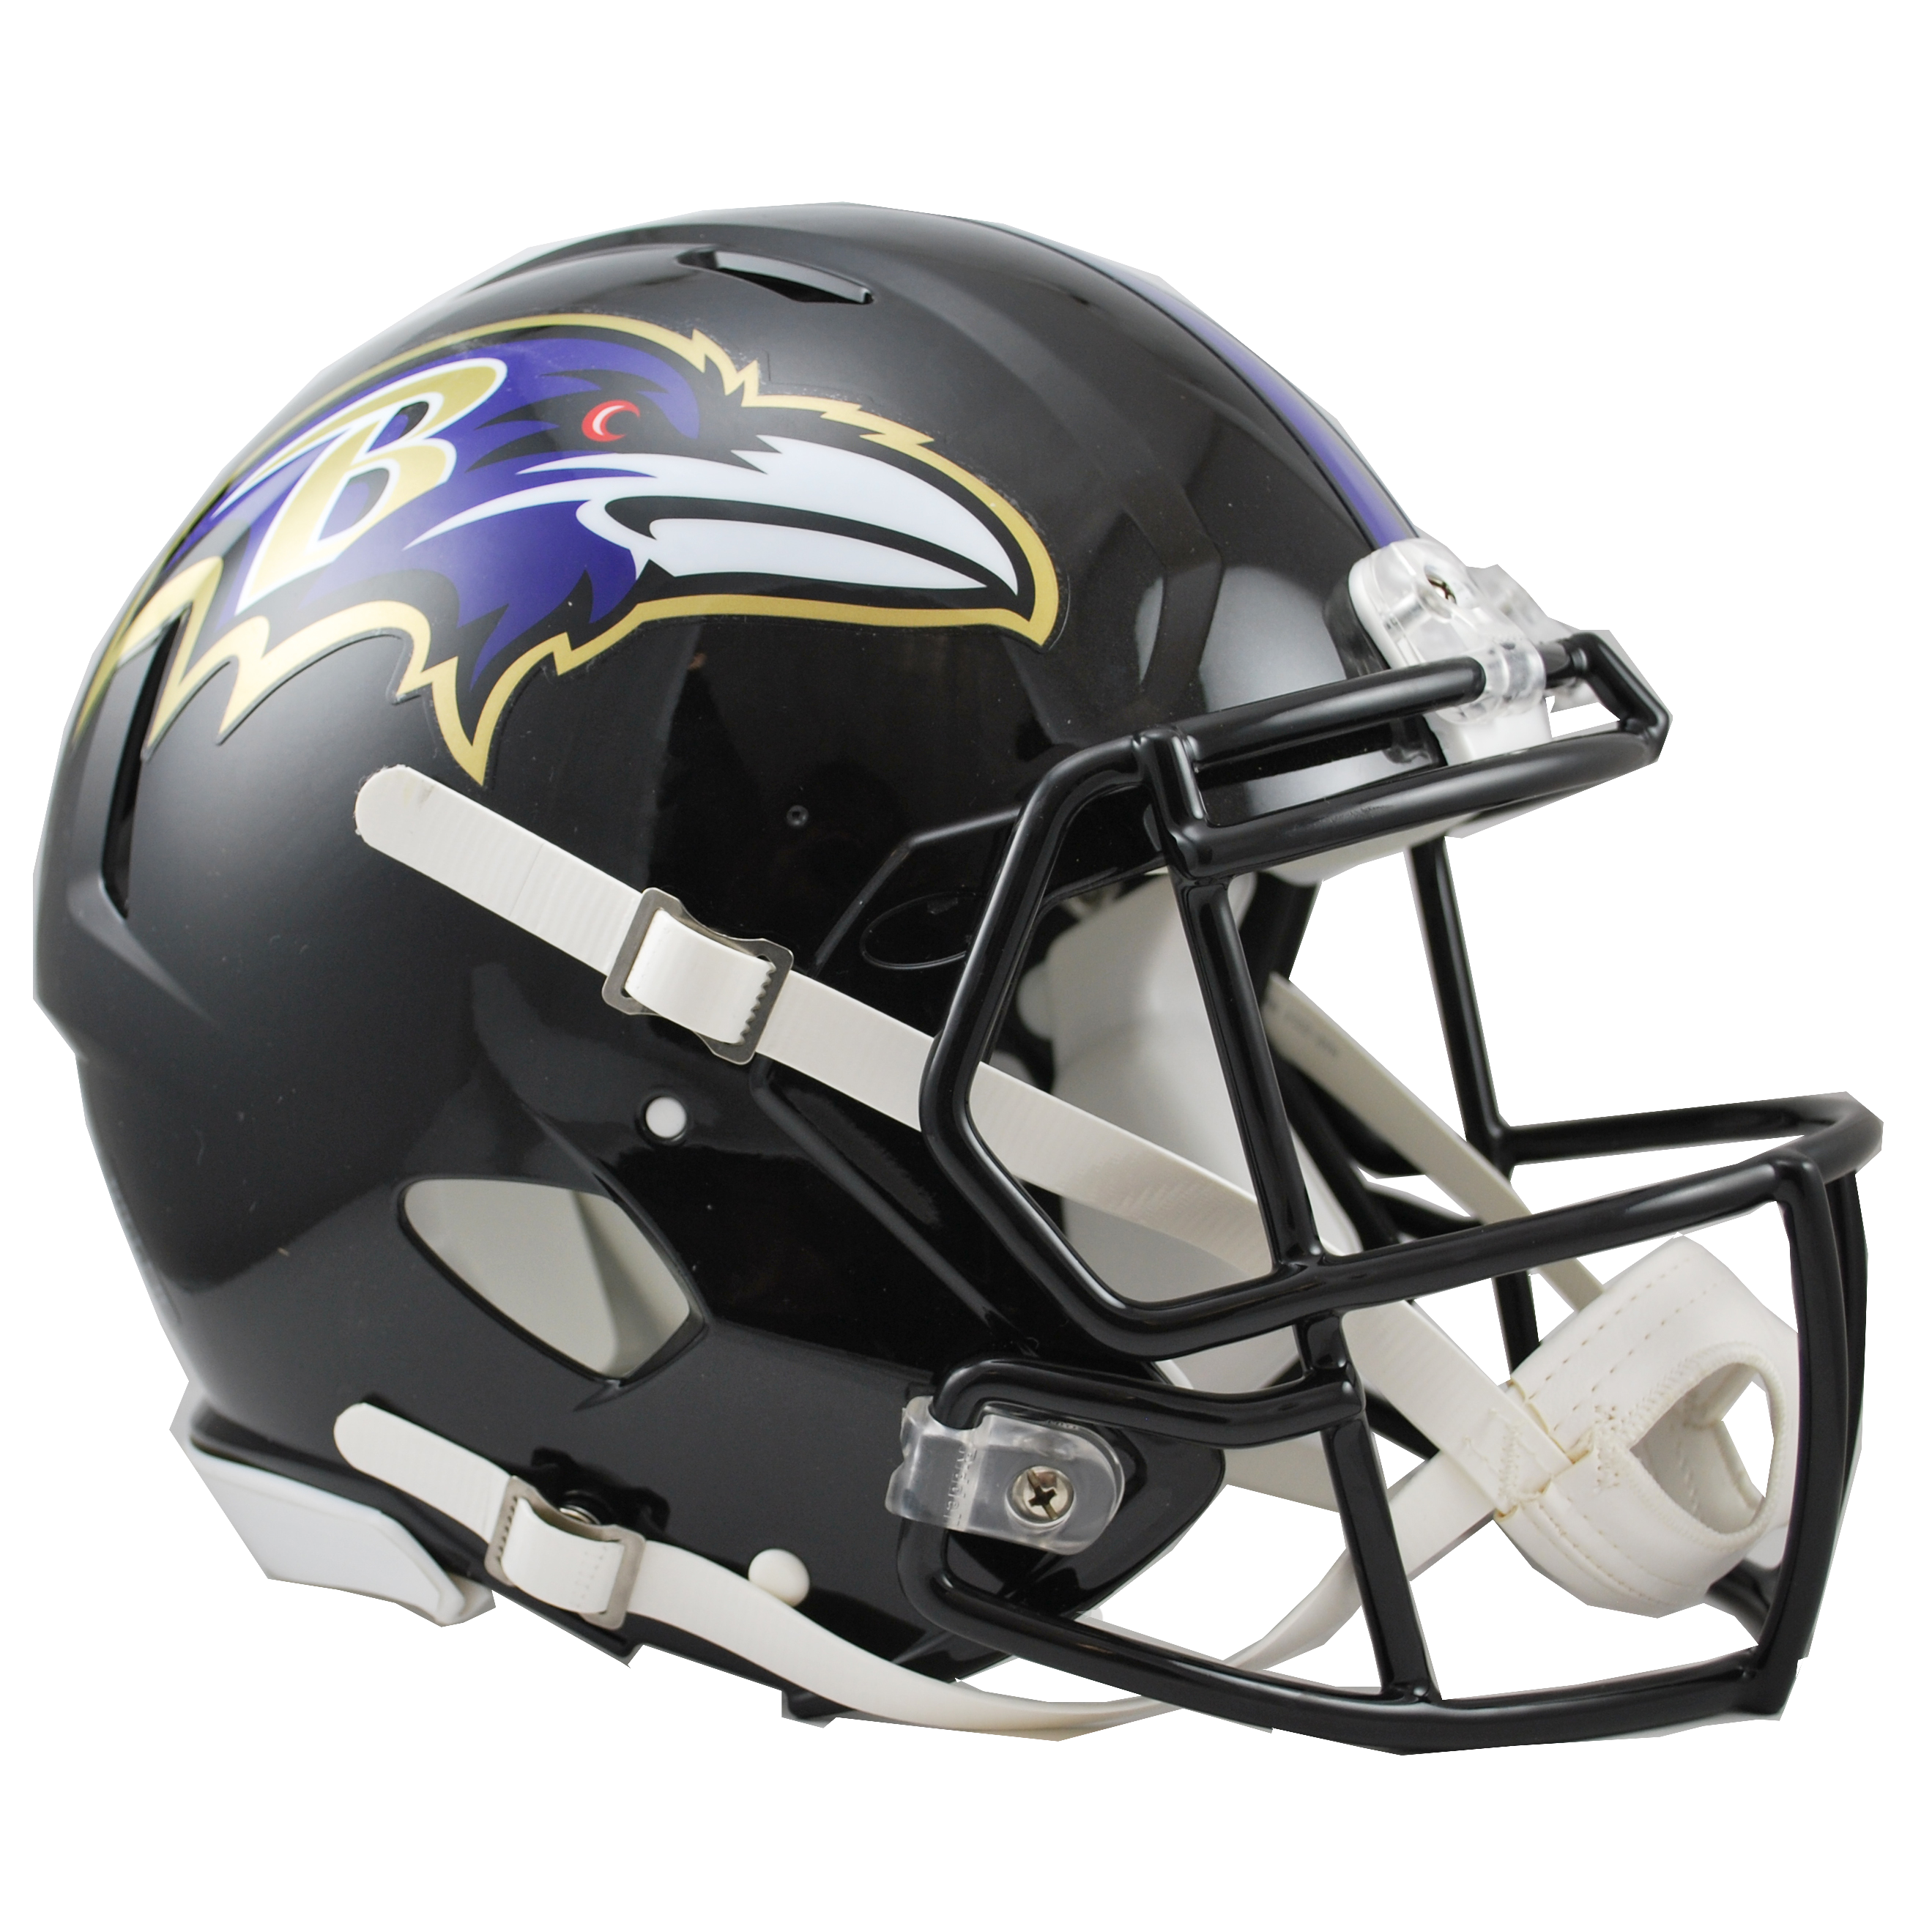 Baltimore Ravens Speed Authentic Helmet.